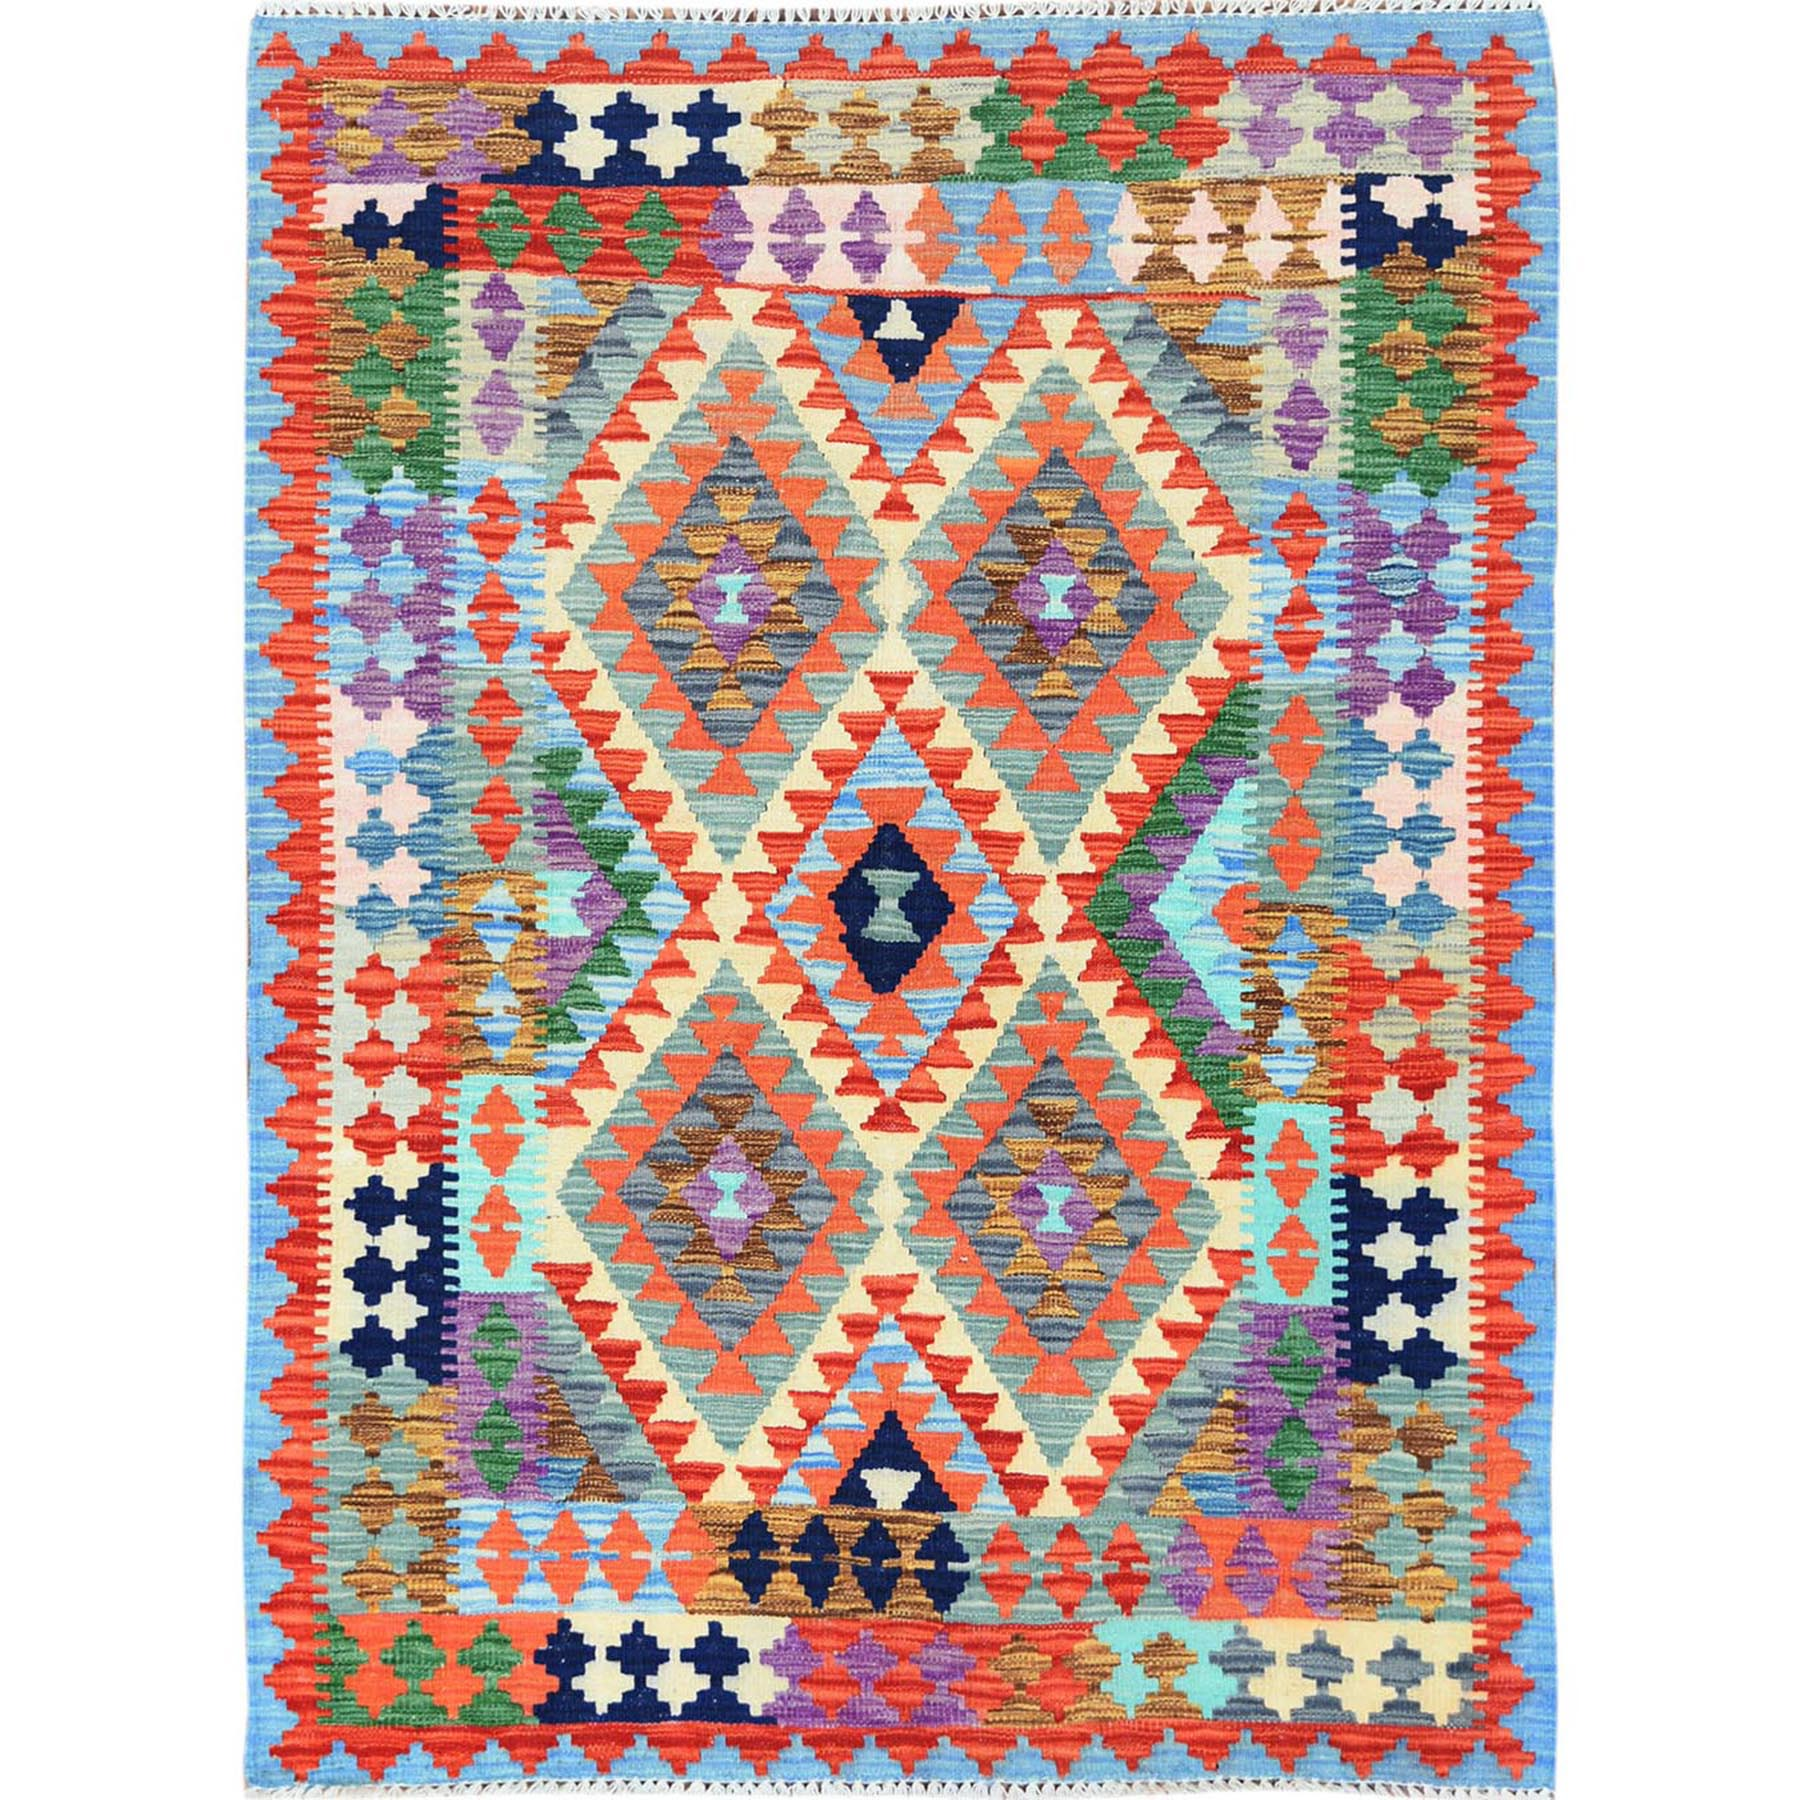 "4'2""x5'10"" Colorful Tribal Design Afghan Kilim Reversible Vibrant Organic Wool Hand Woven Oriental Rug"